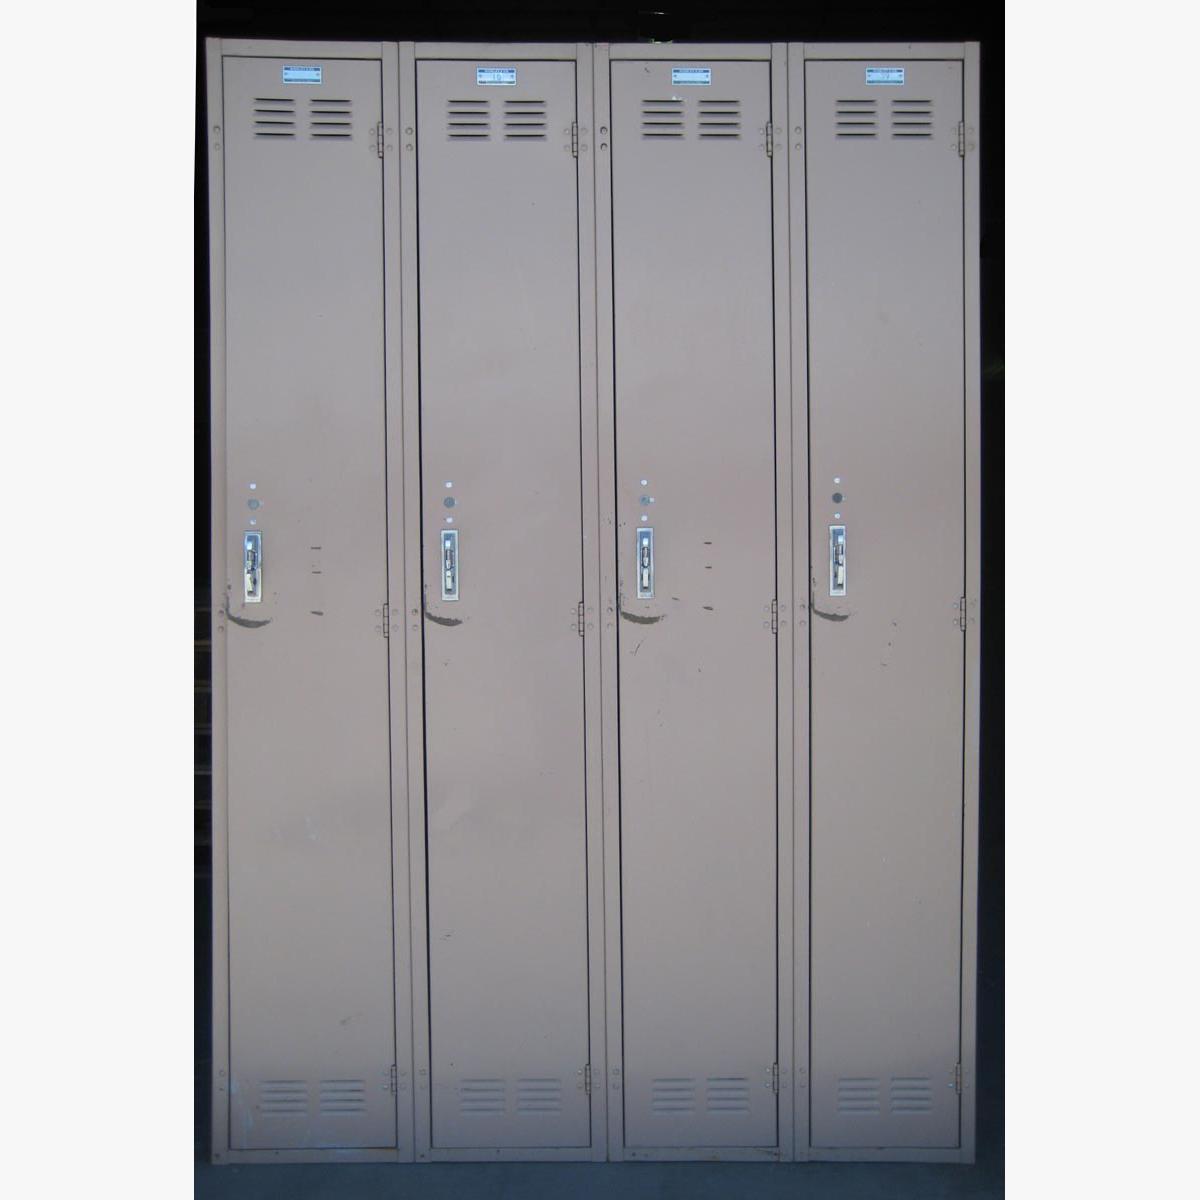 Single Tier Metal Storage Lockersimage 2 image 2